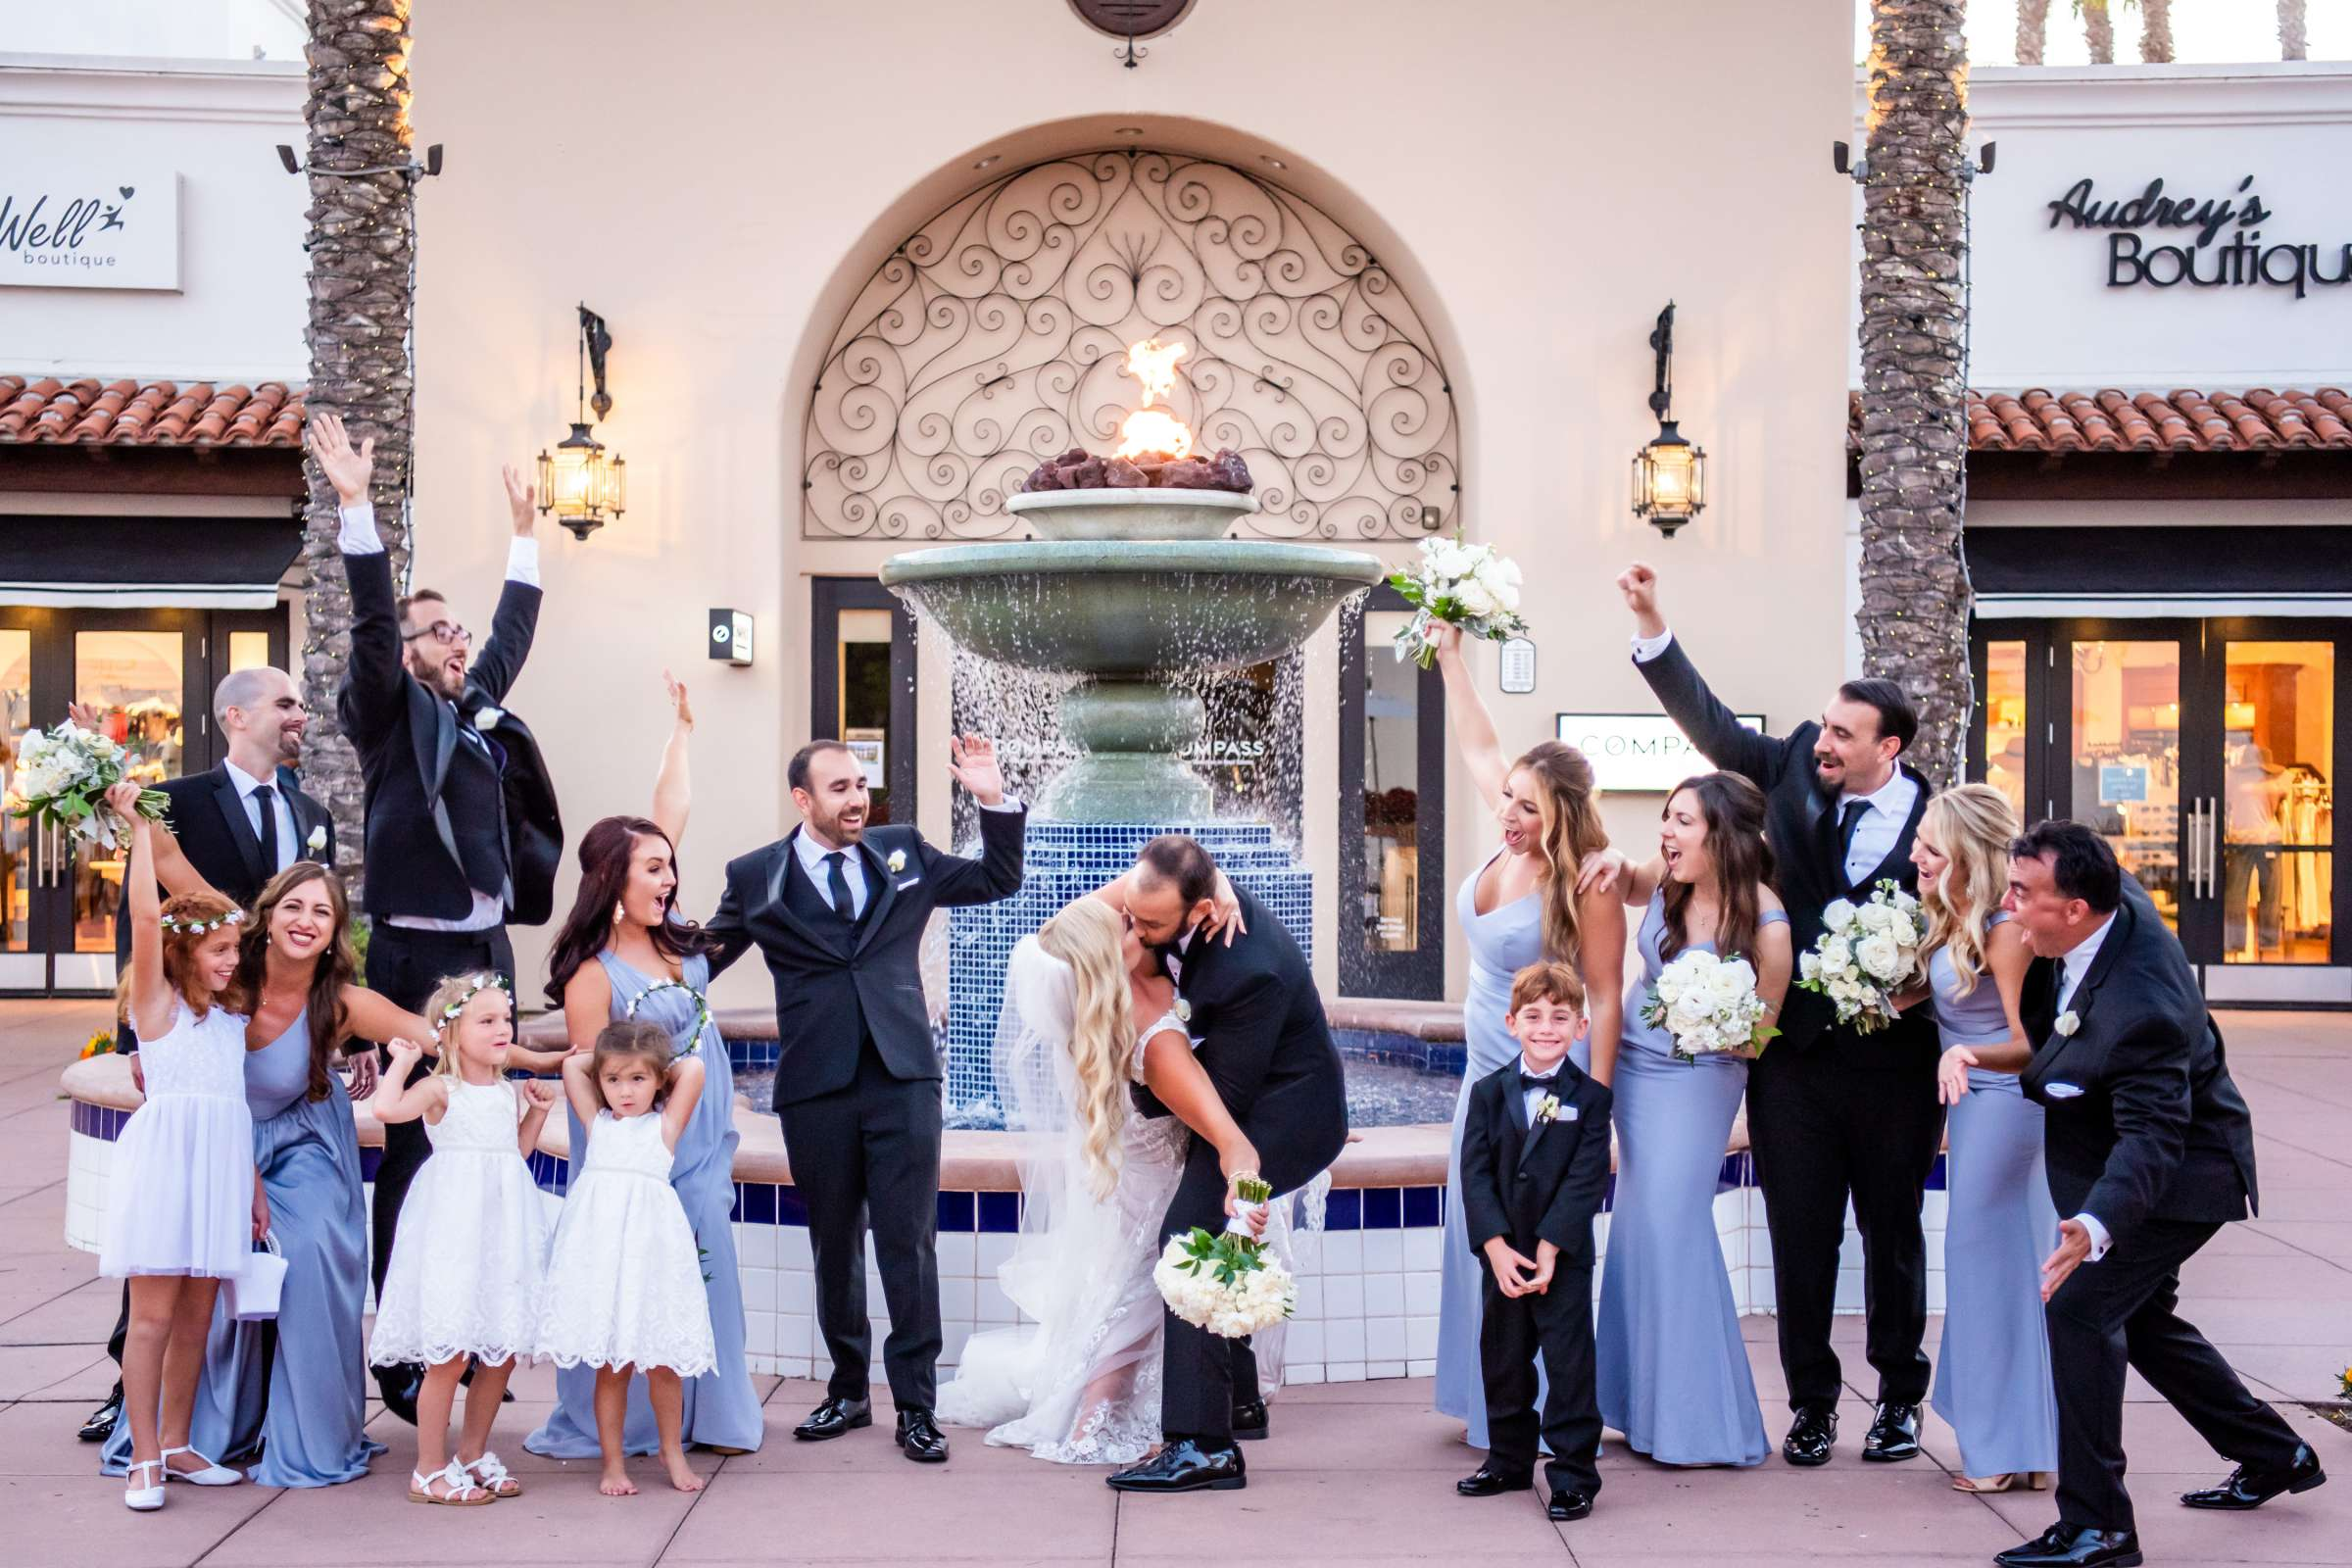 Omni La Costa Resort & Spa Wedding coordinated by SD Weddings by Gina, Jessica and Tom Wedding Photo #571866 by True Photography